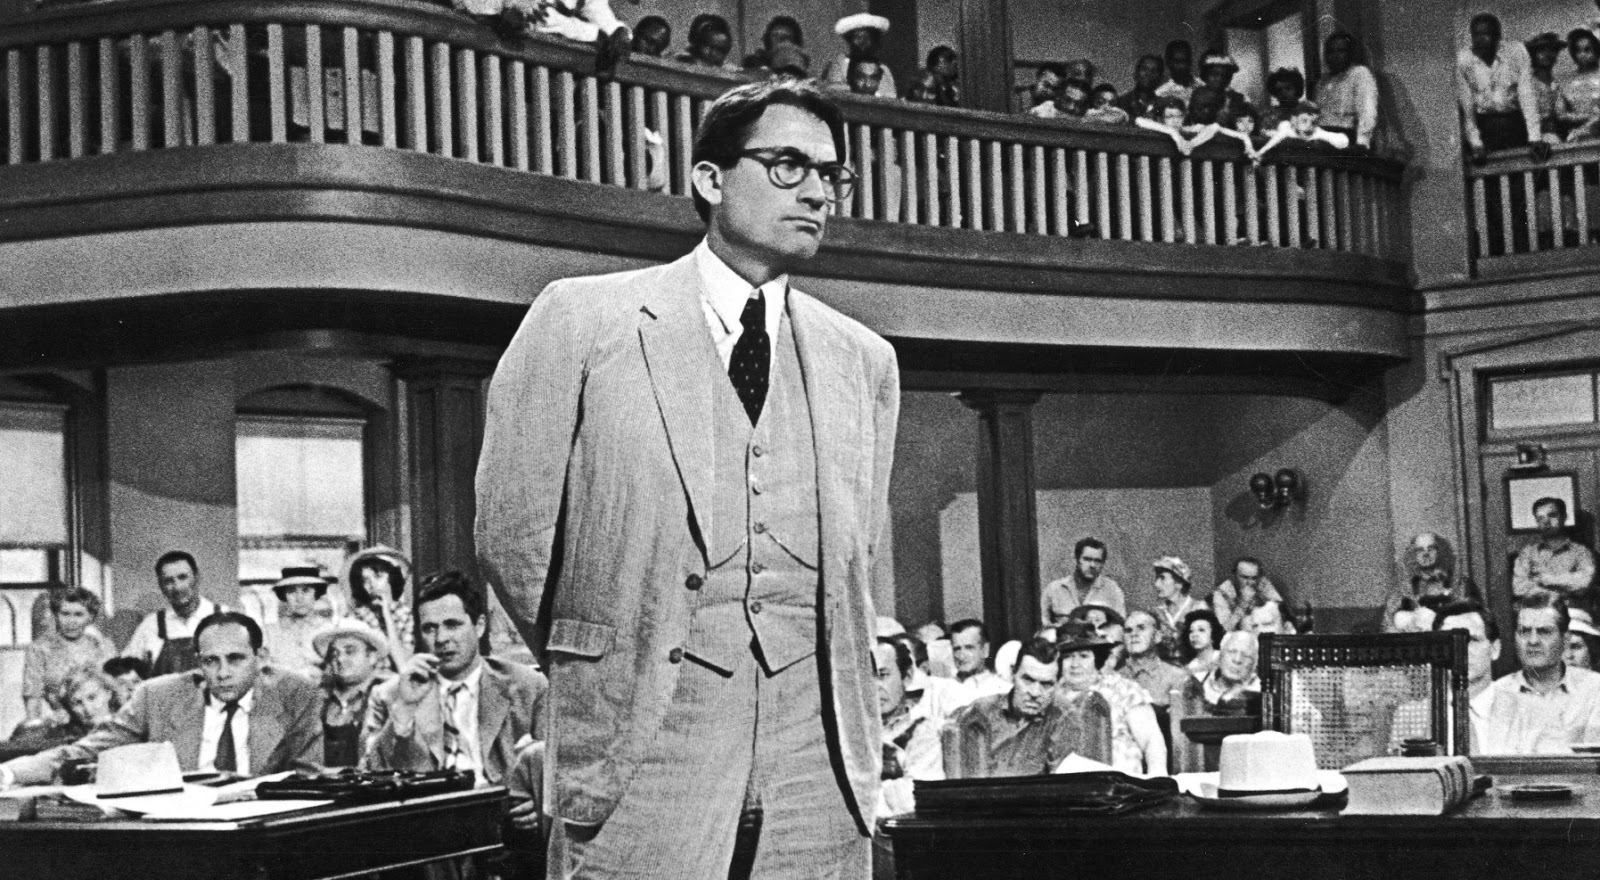 12 Facts About To Kill a Mockingbird You Probably Didn't Know